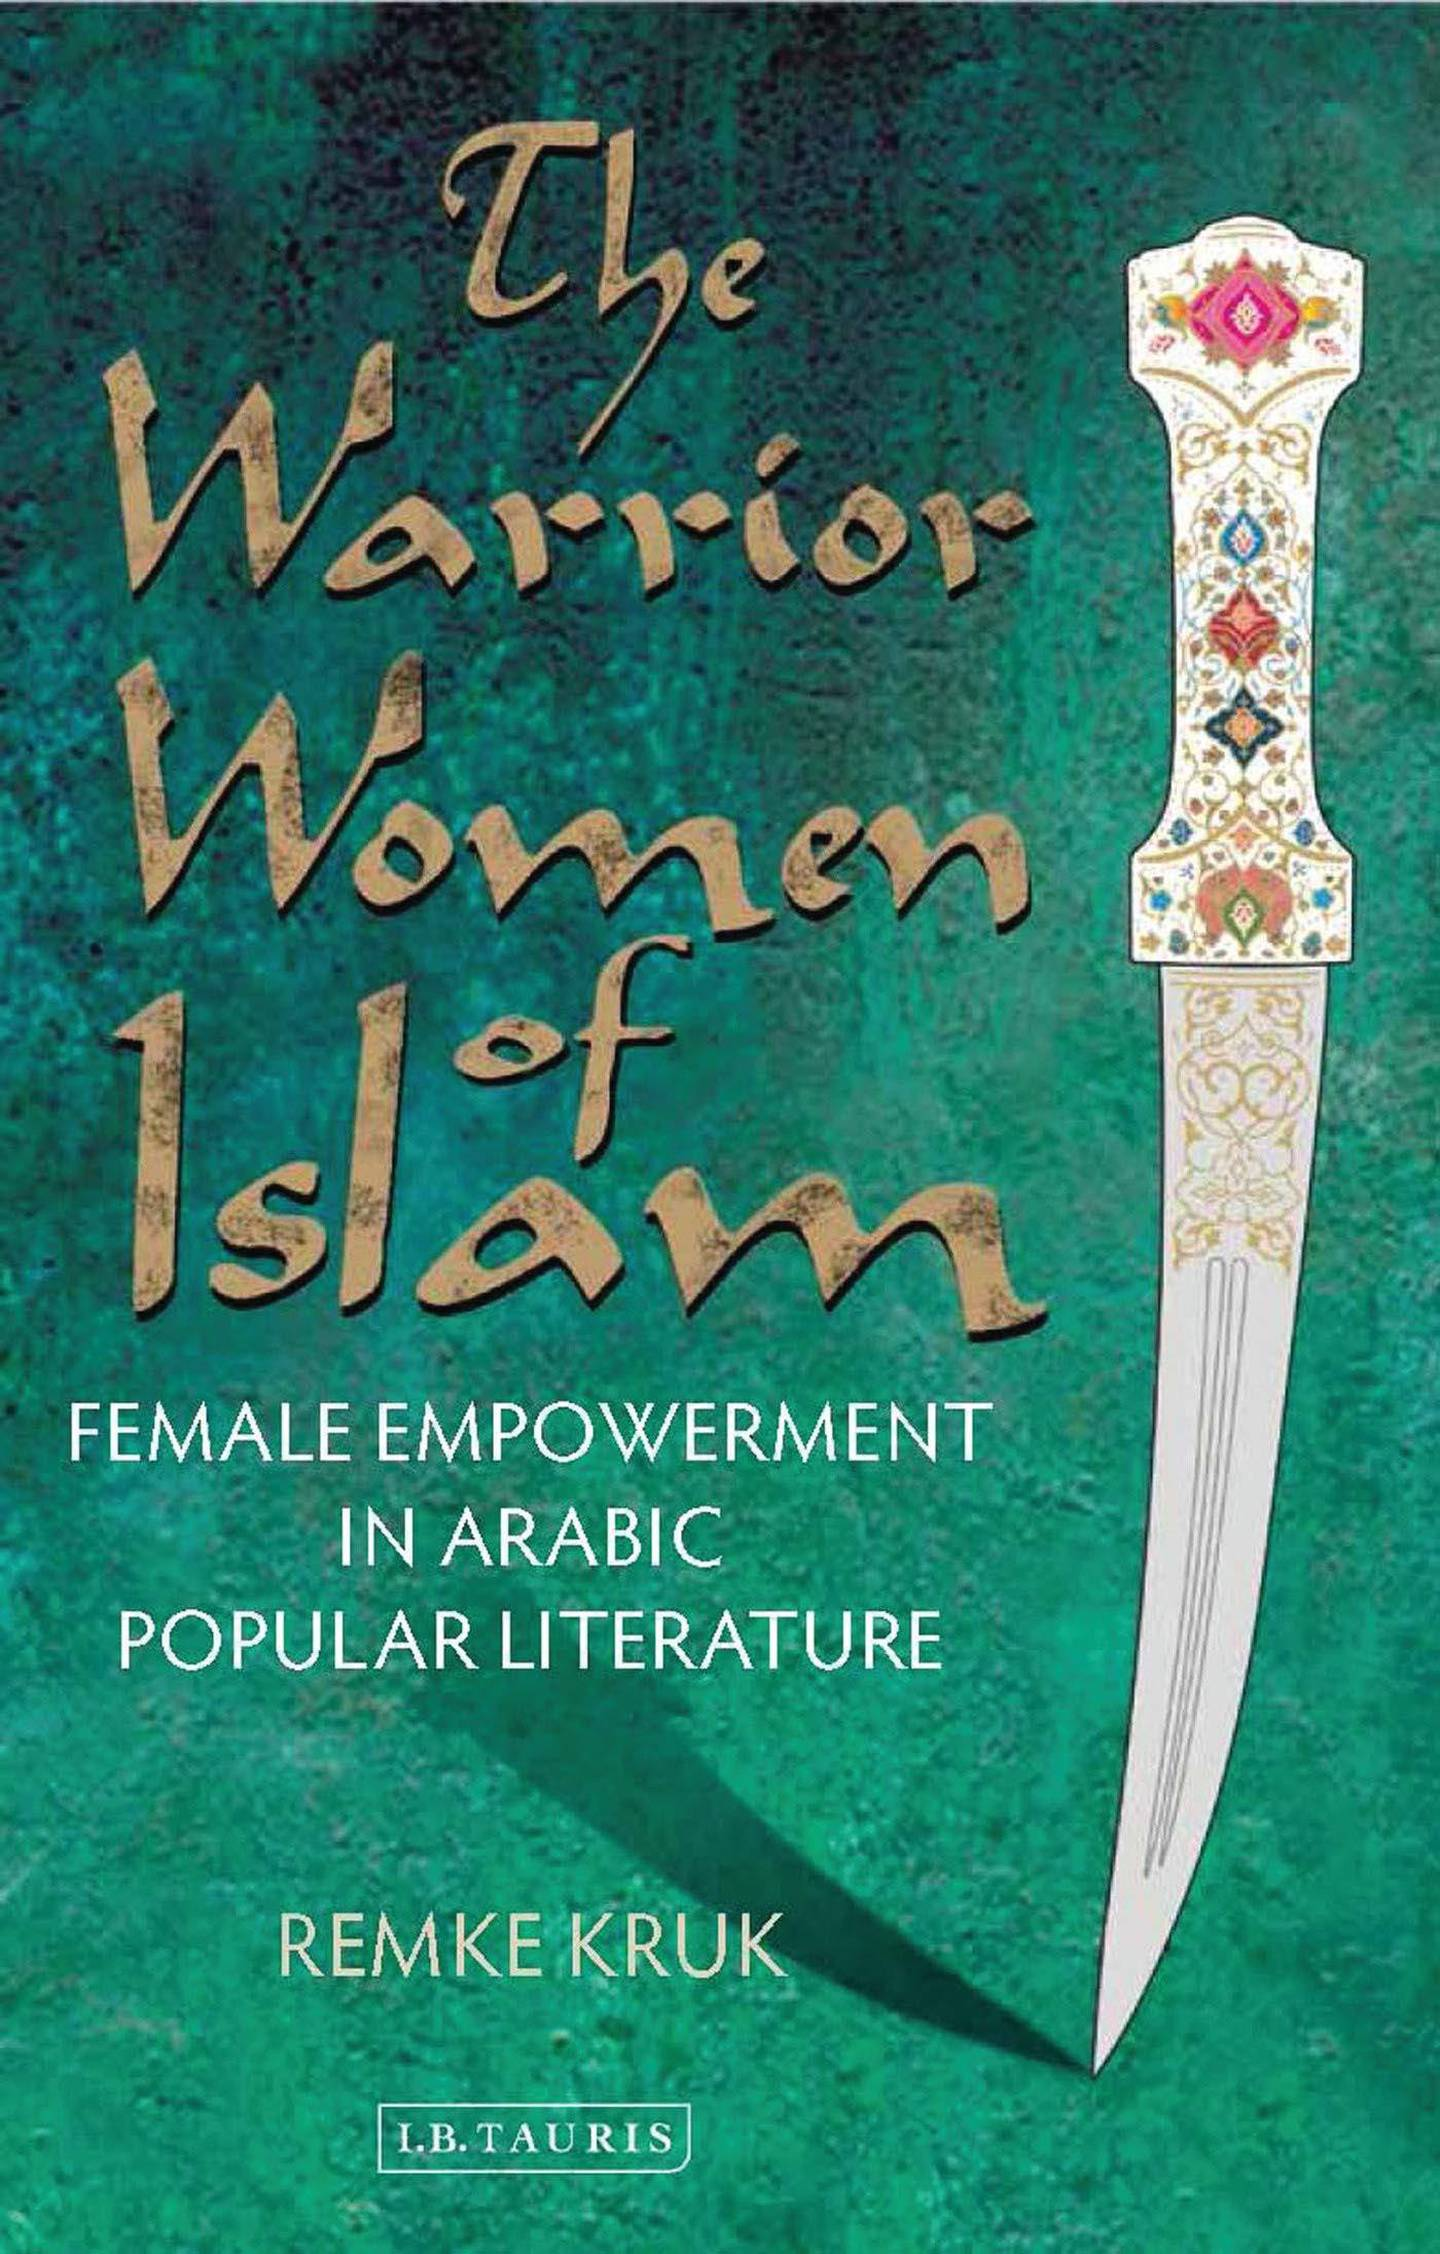 The Warrior Women of Islam: Female Empowerment in Arabic Popular Literature by Remke Kruk published by I.B. Tauris. Courtesy Bloomsbury